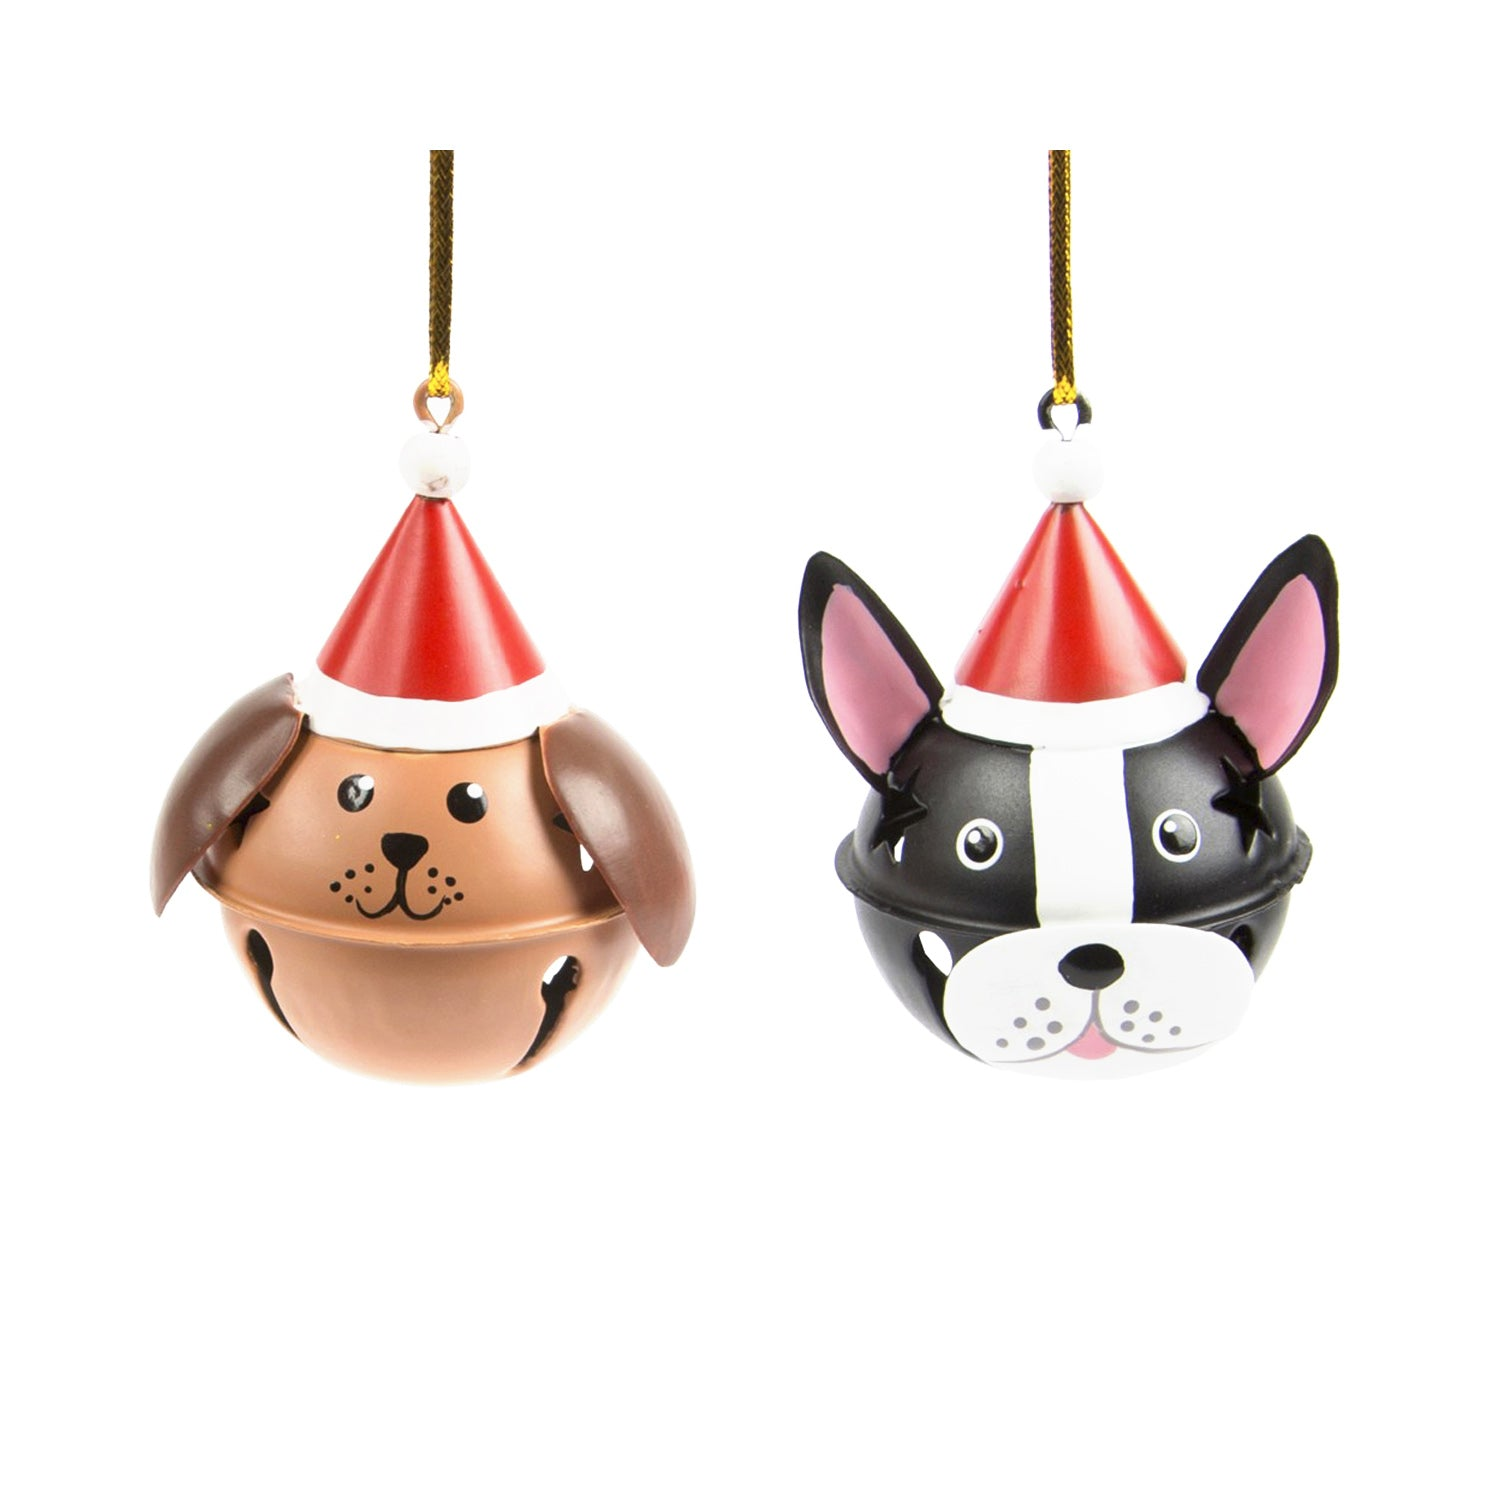 DogKrazy.Gifts – Christmas Tree bell bauble in the shape of a Dog's head available from Dog Krazy Gifts